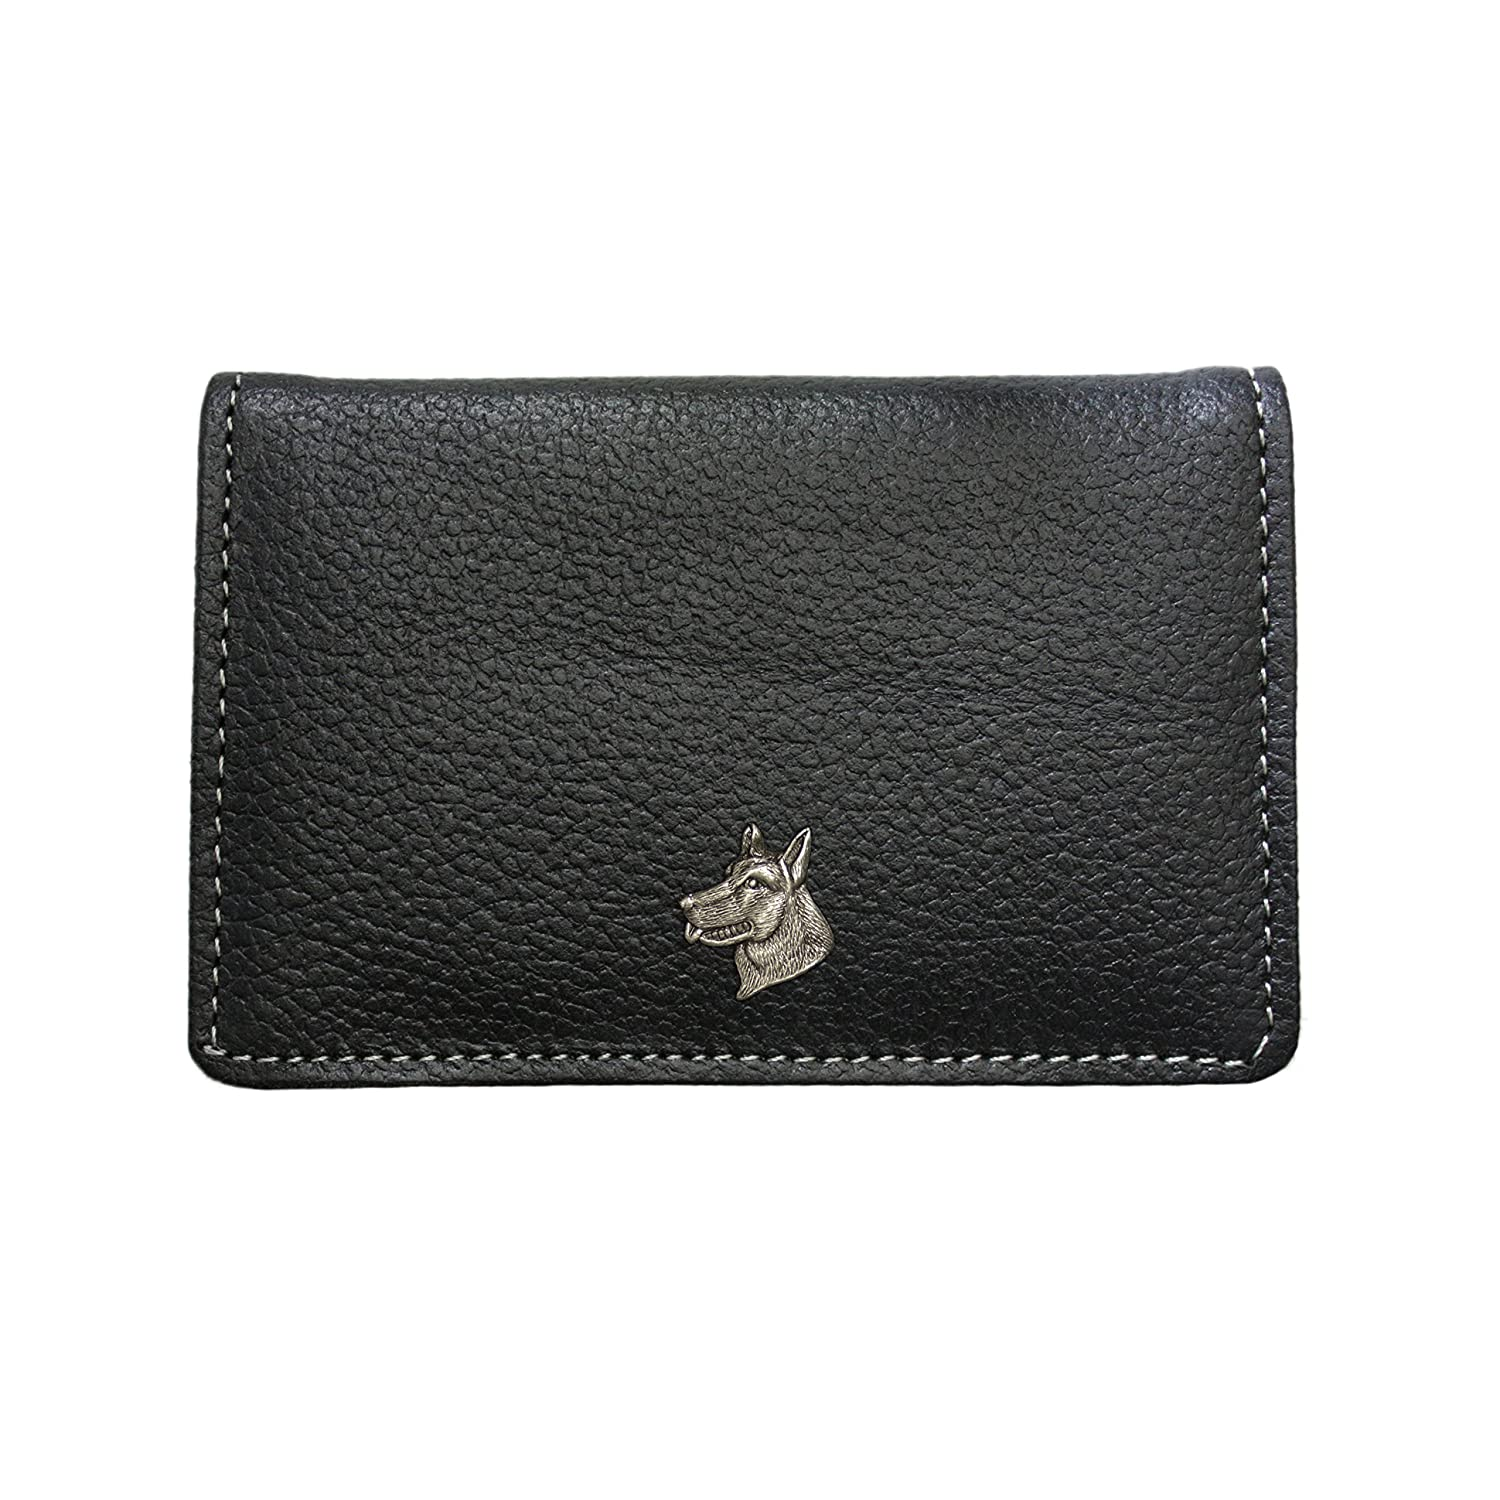 Alsatian German Shepherd dog leather card holder wallet